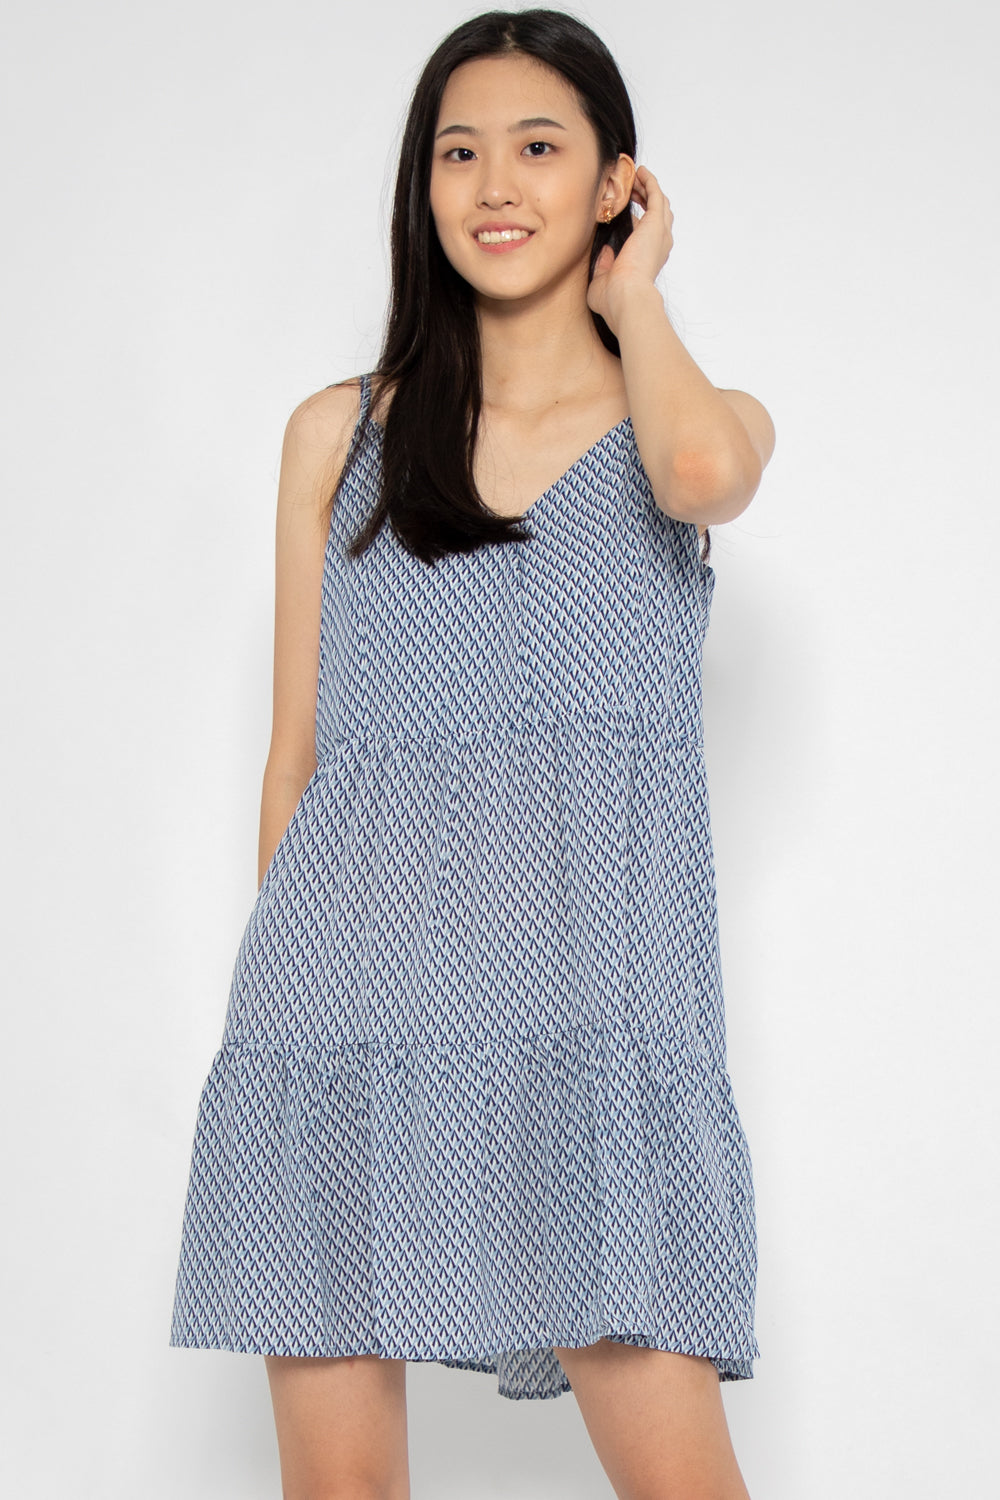 Evelyn Printed Babydoll Swing Dress in Blue Aztech - Three One Duo